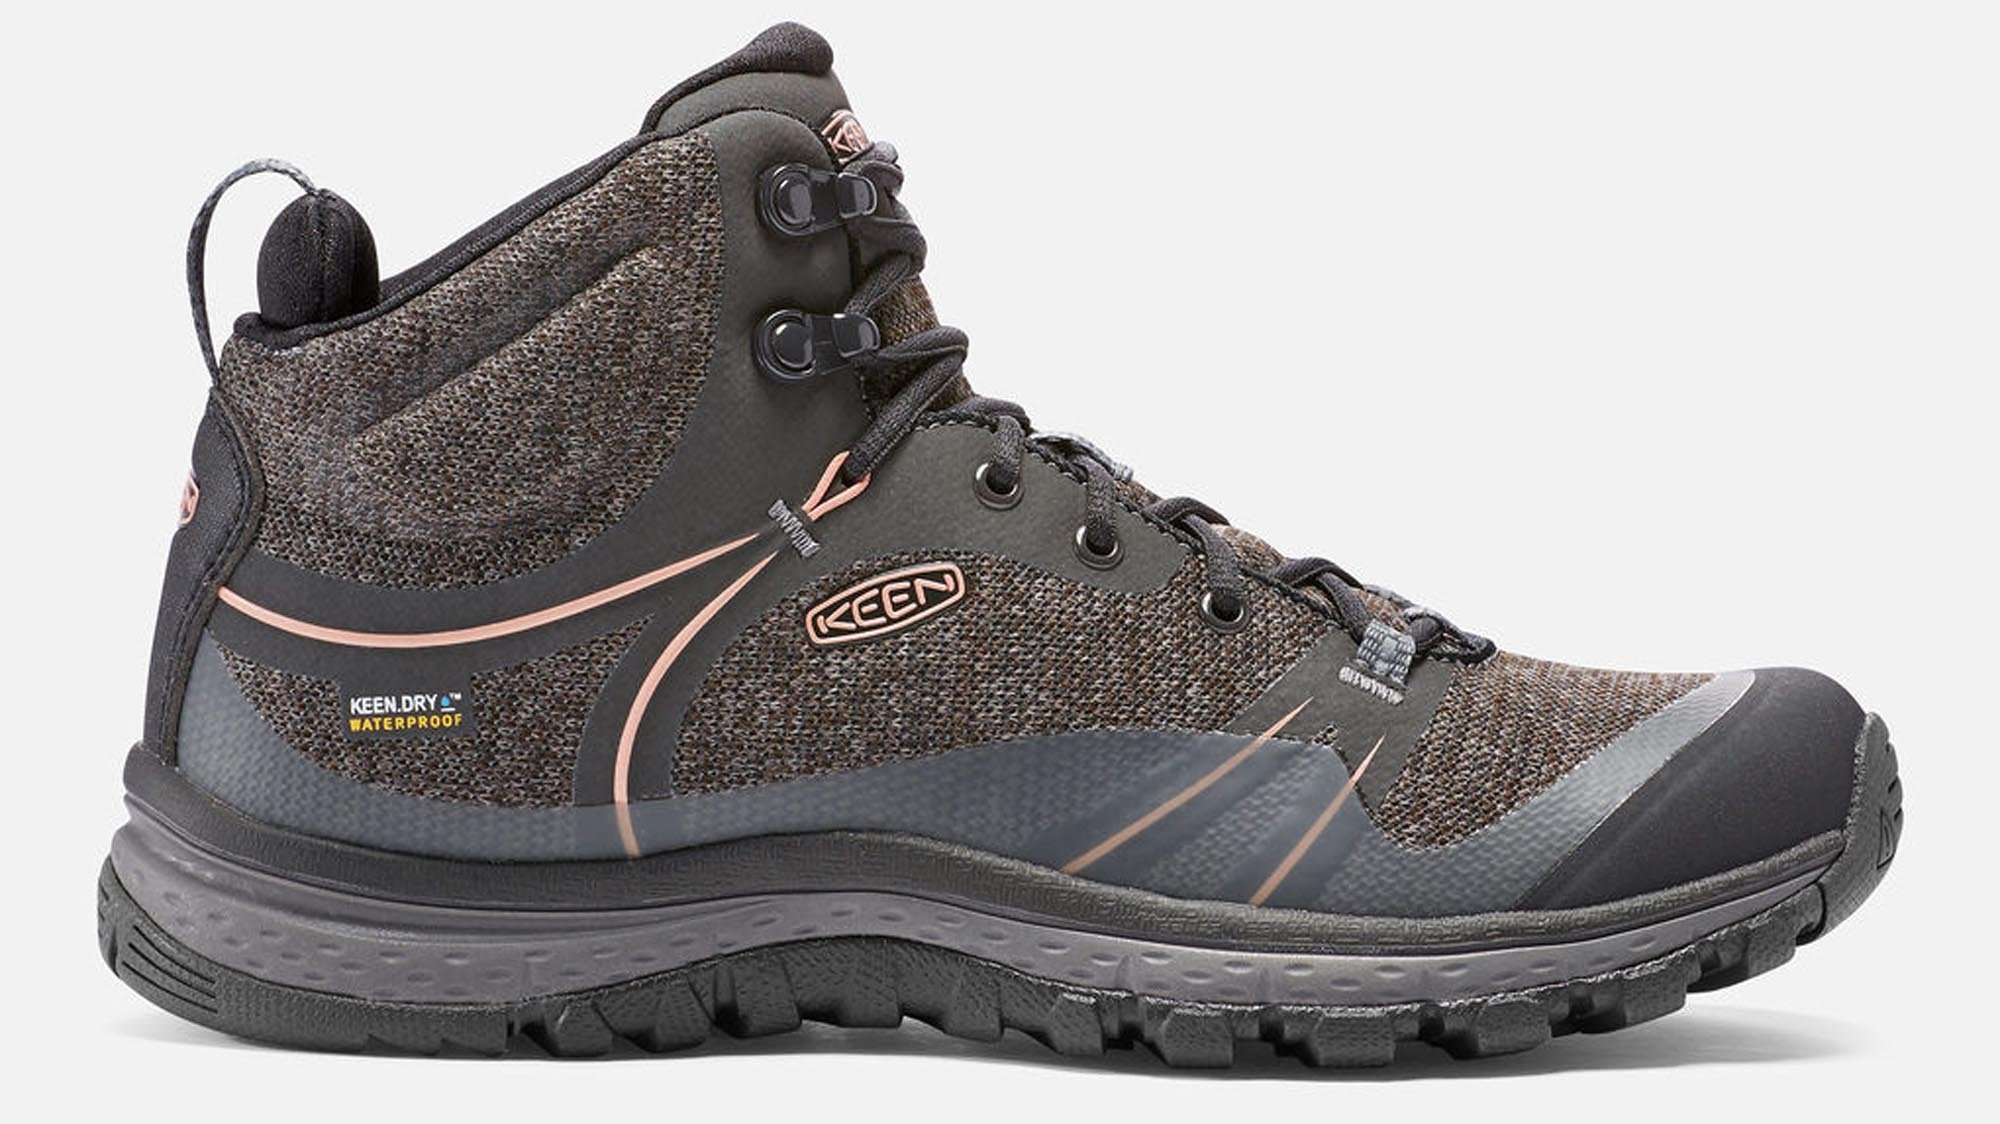 9e63374c0c9 Best hiking boots 2019  Walking boots for men and women from £38 ...